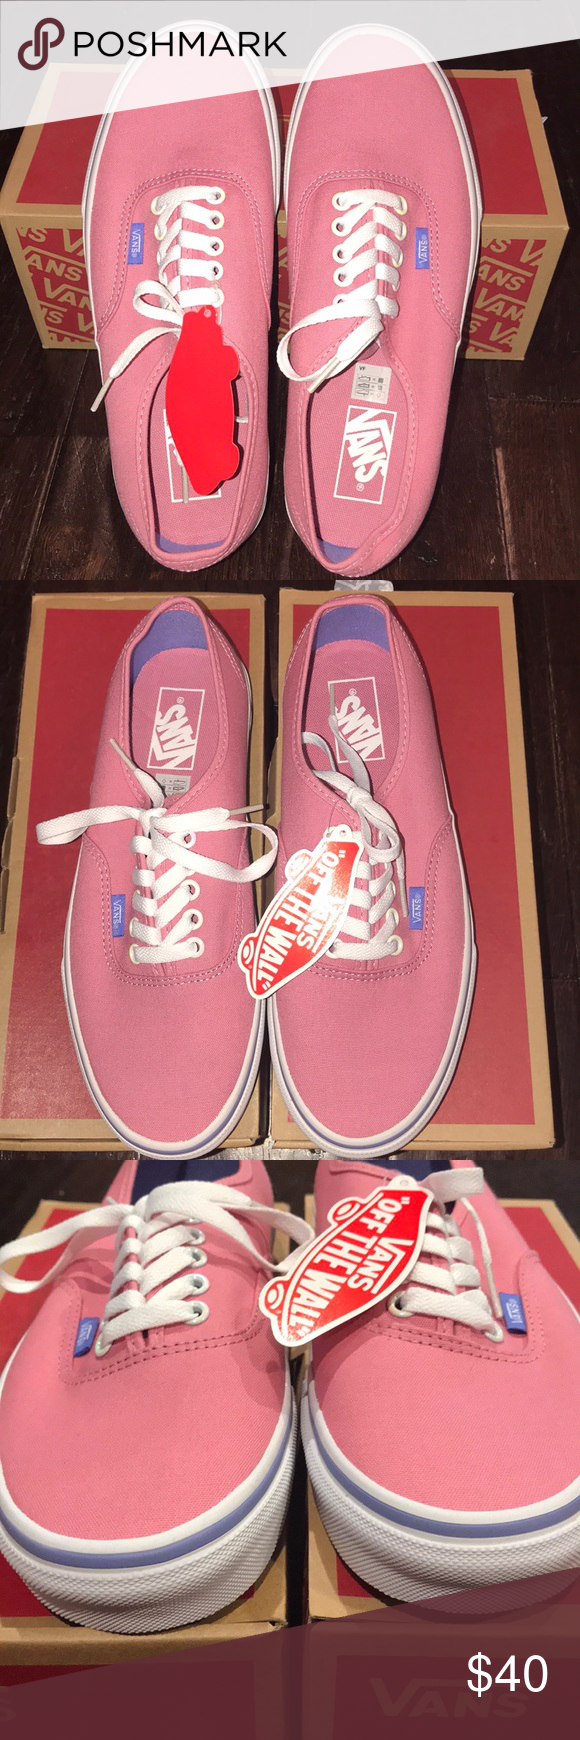 05f1b09697 Vans Authentic Shoes Wild Rode Low Top Authentic Vans. Pink blue stripe  white Size 9.5 women s. NWT. Never been worn. Will accept reasonable offer.